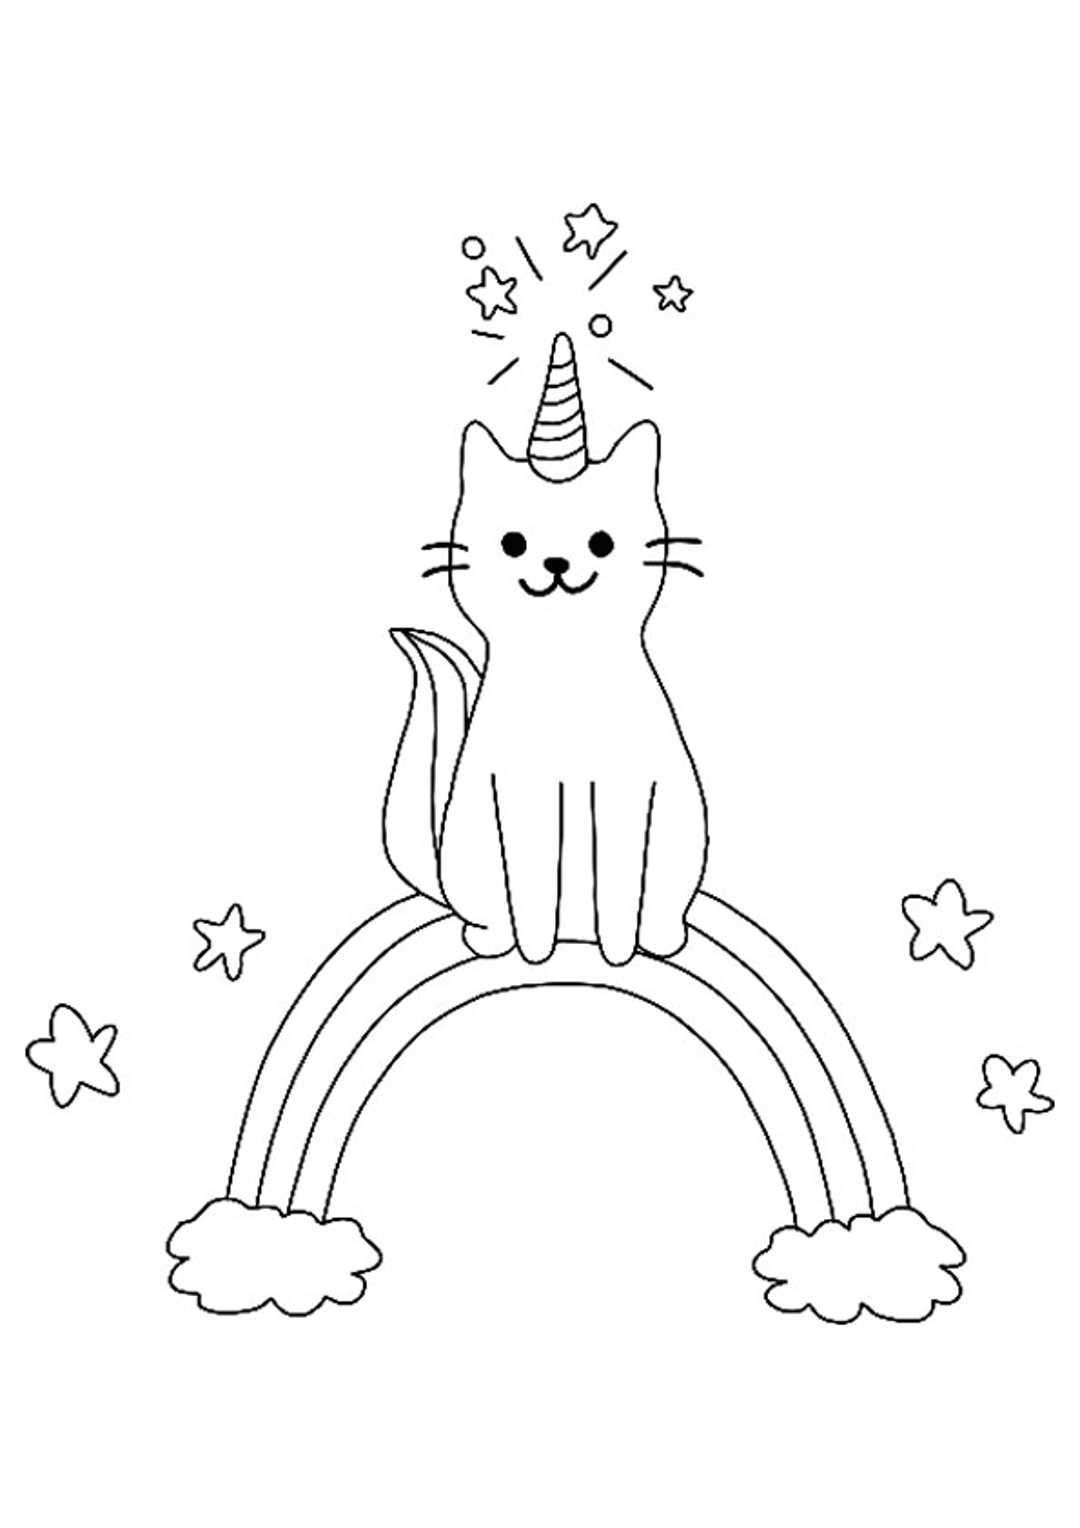 Unicorn Rainbow Coloring Page Mermaid Coloring Pages Coloring Pages Unicorn Coloring Pages